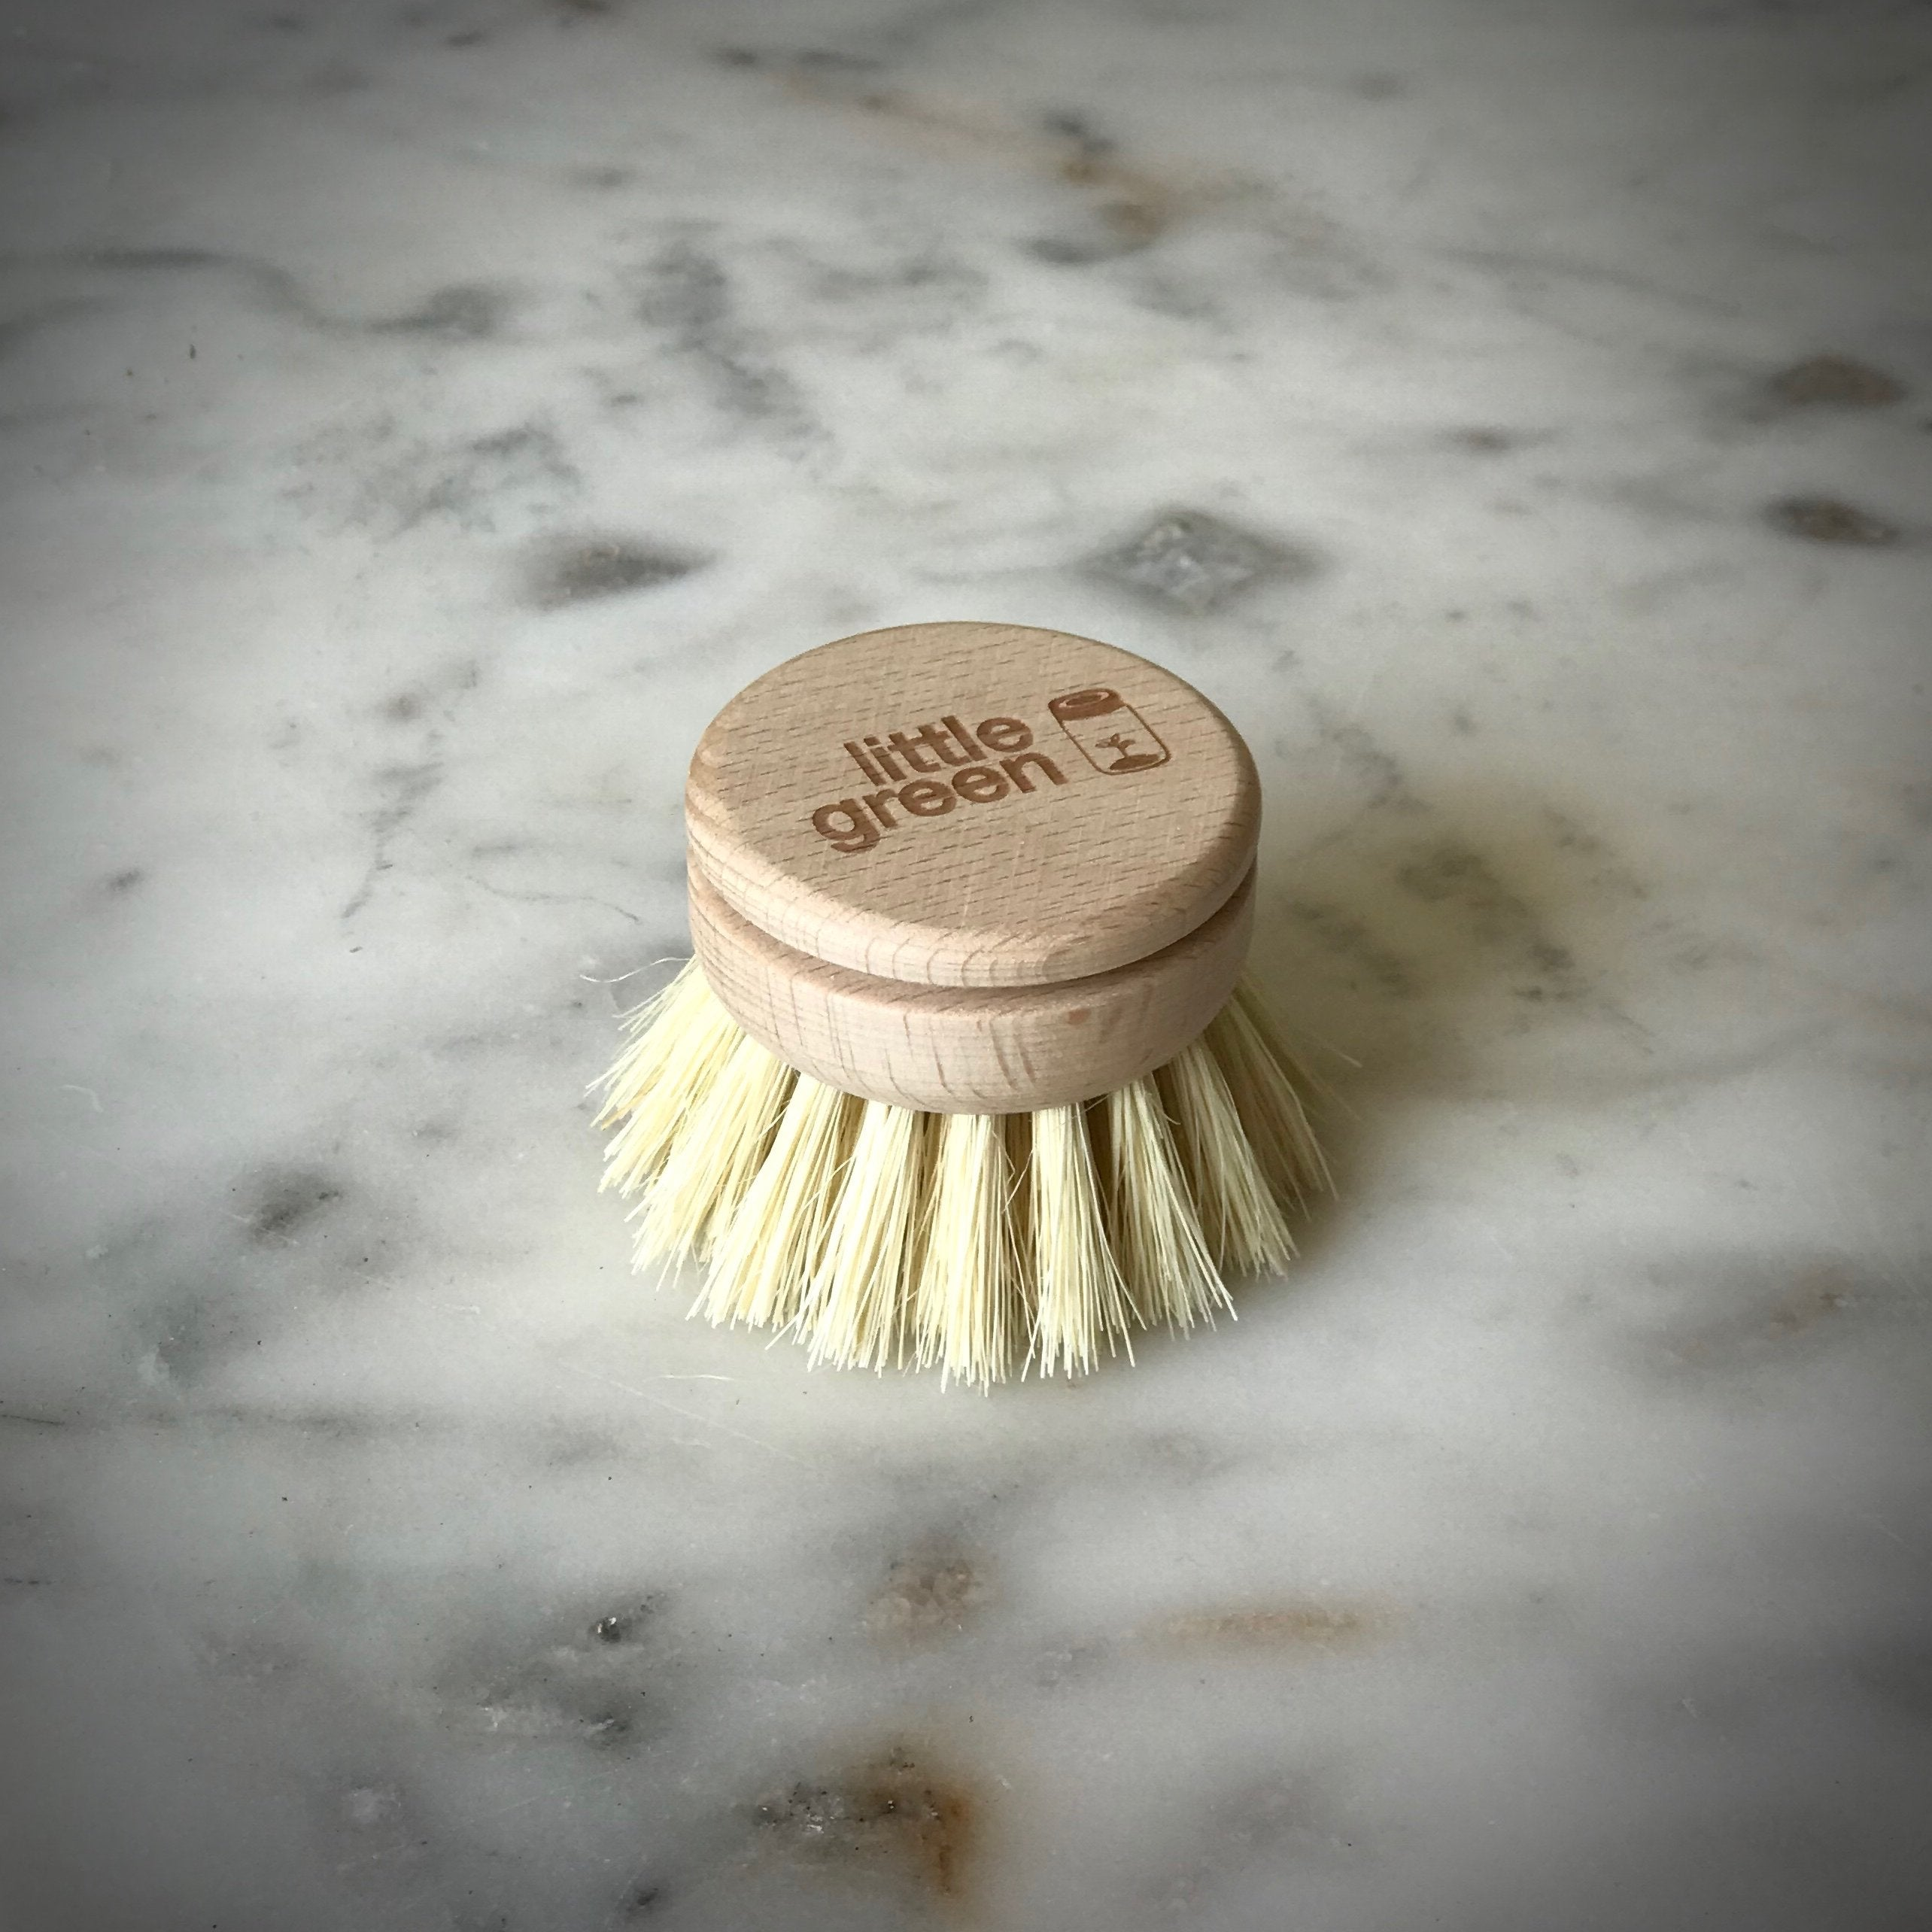 Little Green Dish Brush Replacement - Refill Nation